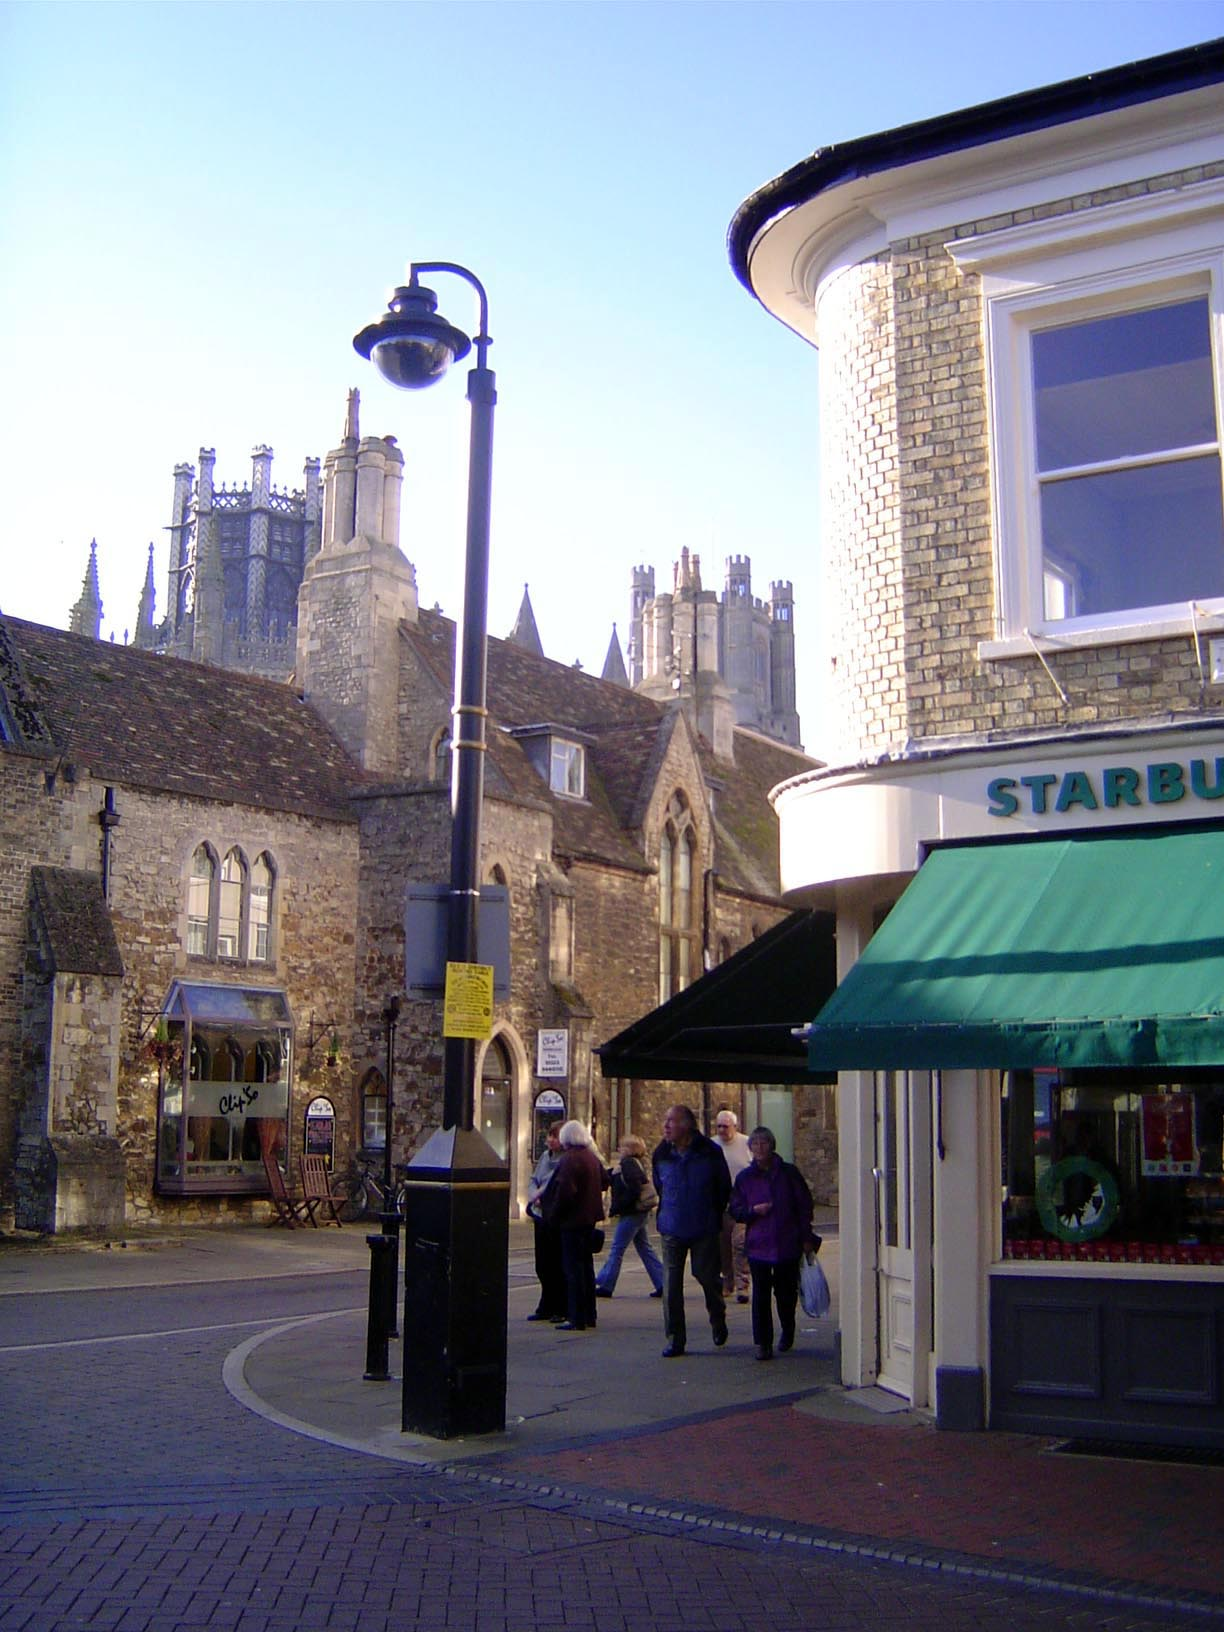 The United Kingdom: Ely Cathedral and St. Andrew's, Isleham